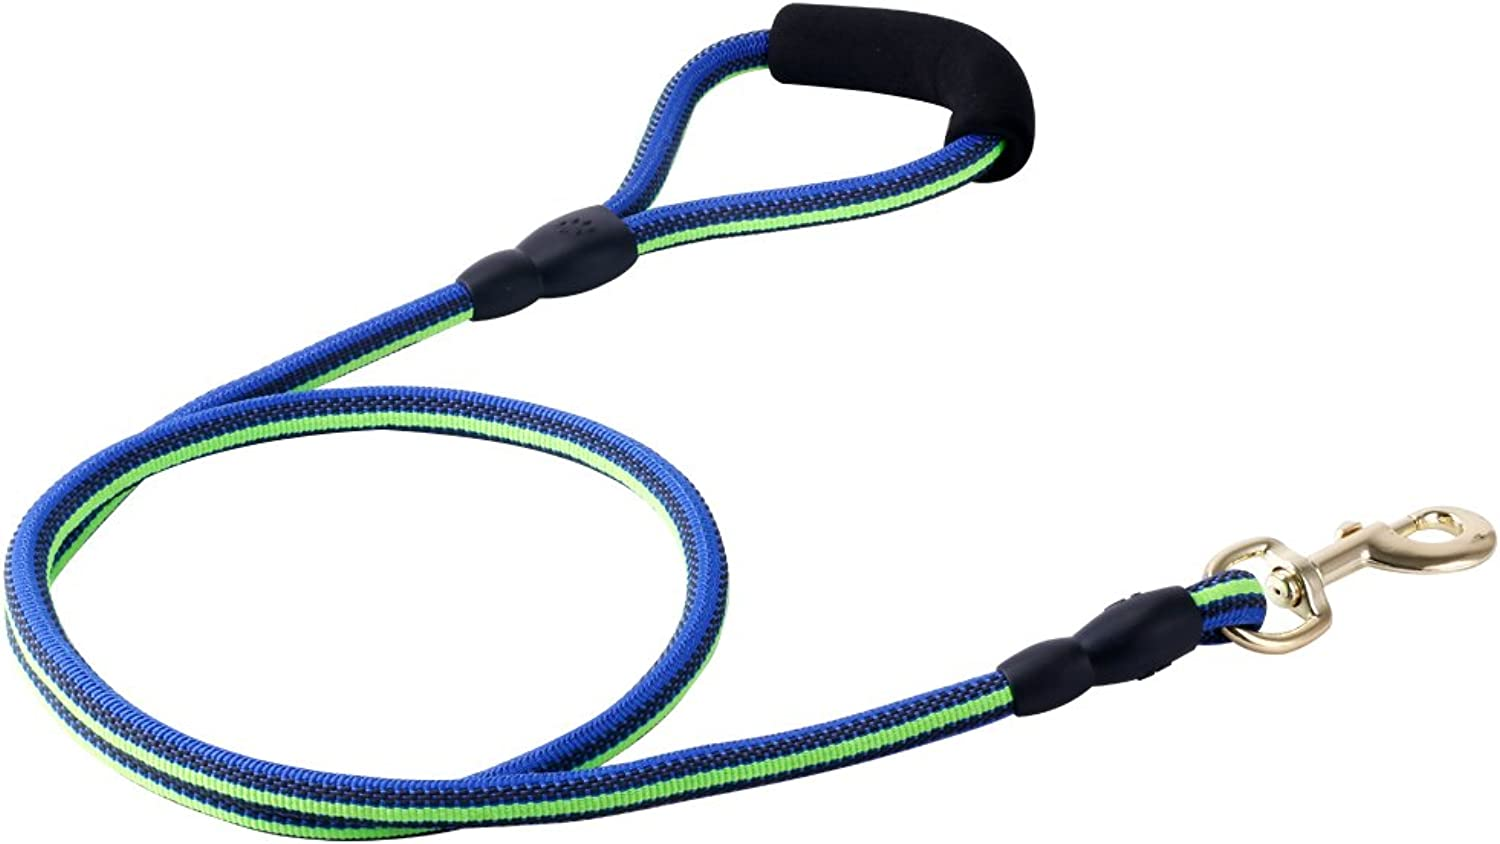 NonSlip Round Dog Leash Nylon & Rubber Weaving with Heavy Metal Hook and NonSlip Handle bluee(3 55 ft)